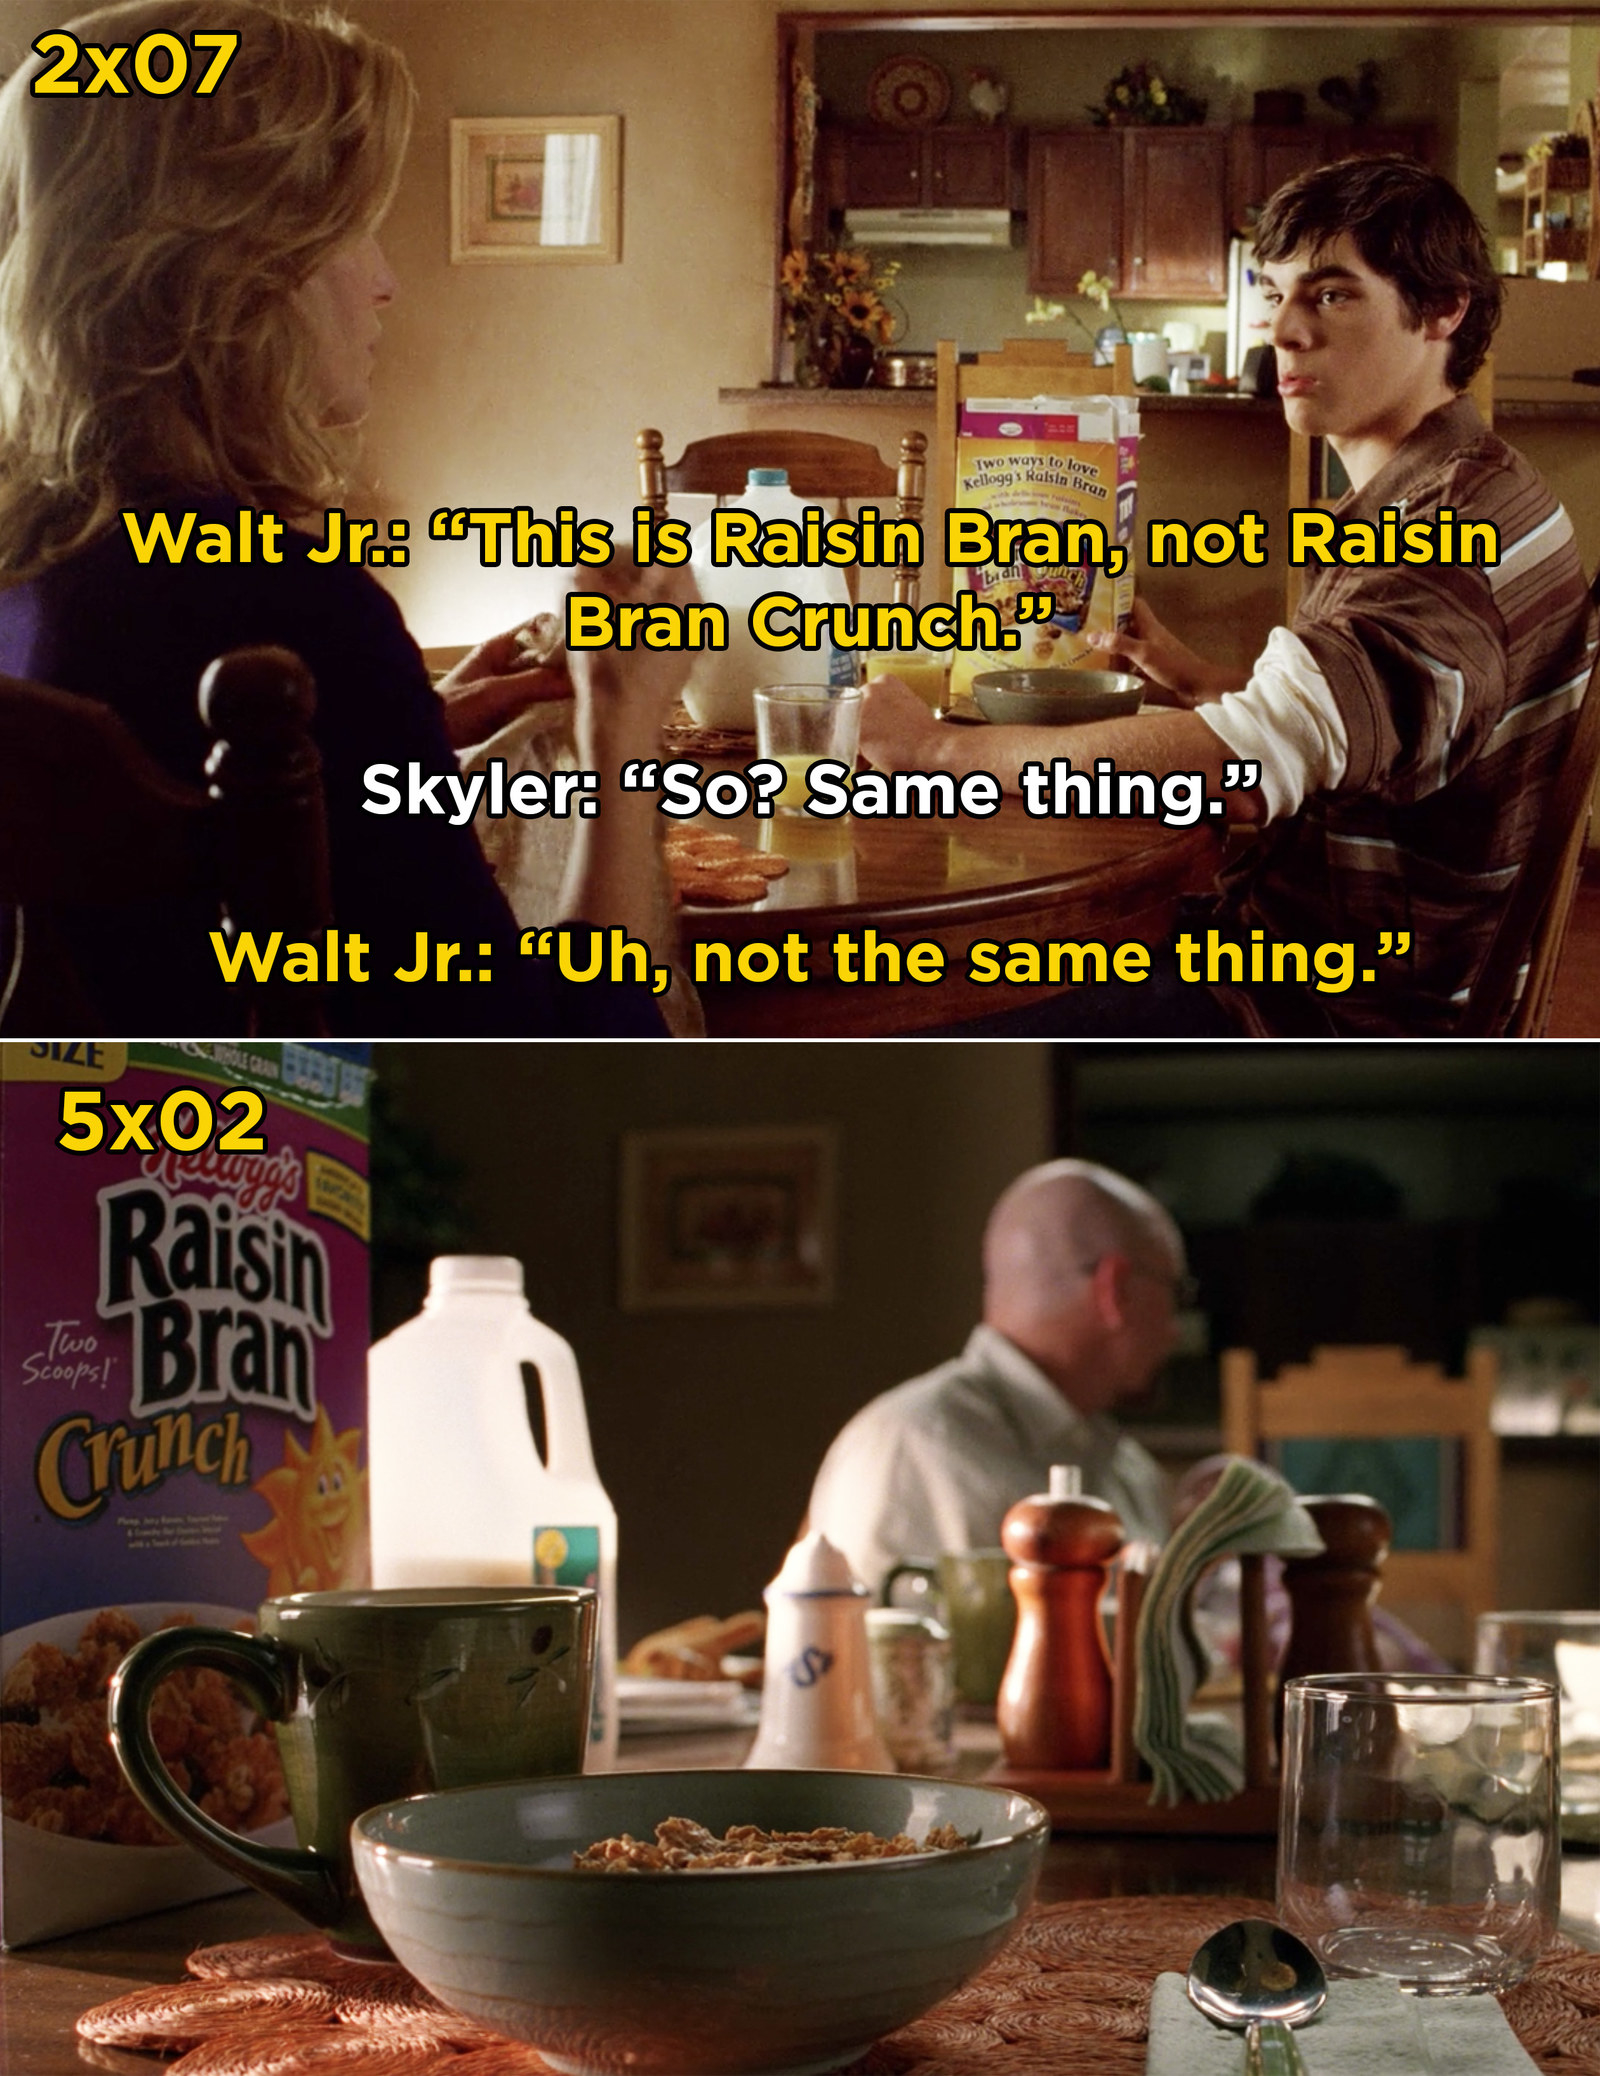 In Season 2 of  Breaking Bad , Walt Jr. scolds Skyler for buying Raisin Bran, not Raisin Bran Crunch. Later on, you can see that she bought the correct type of cereal.